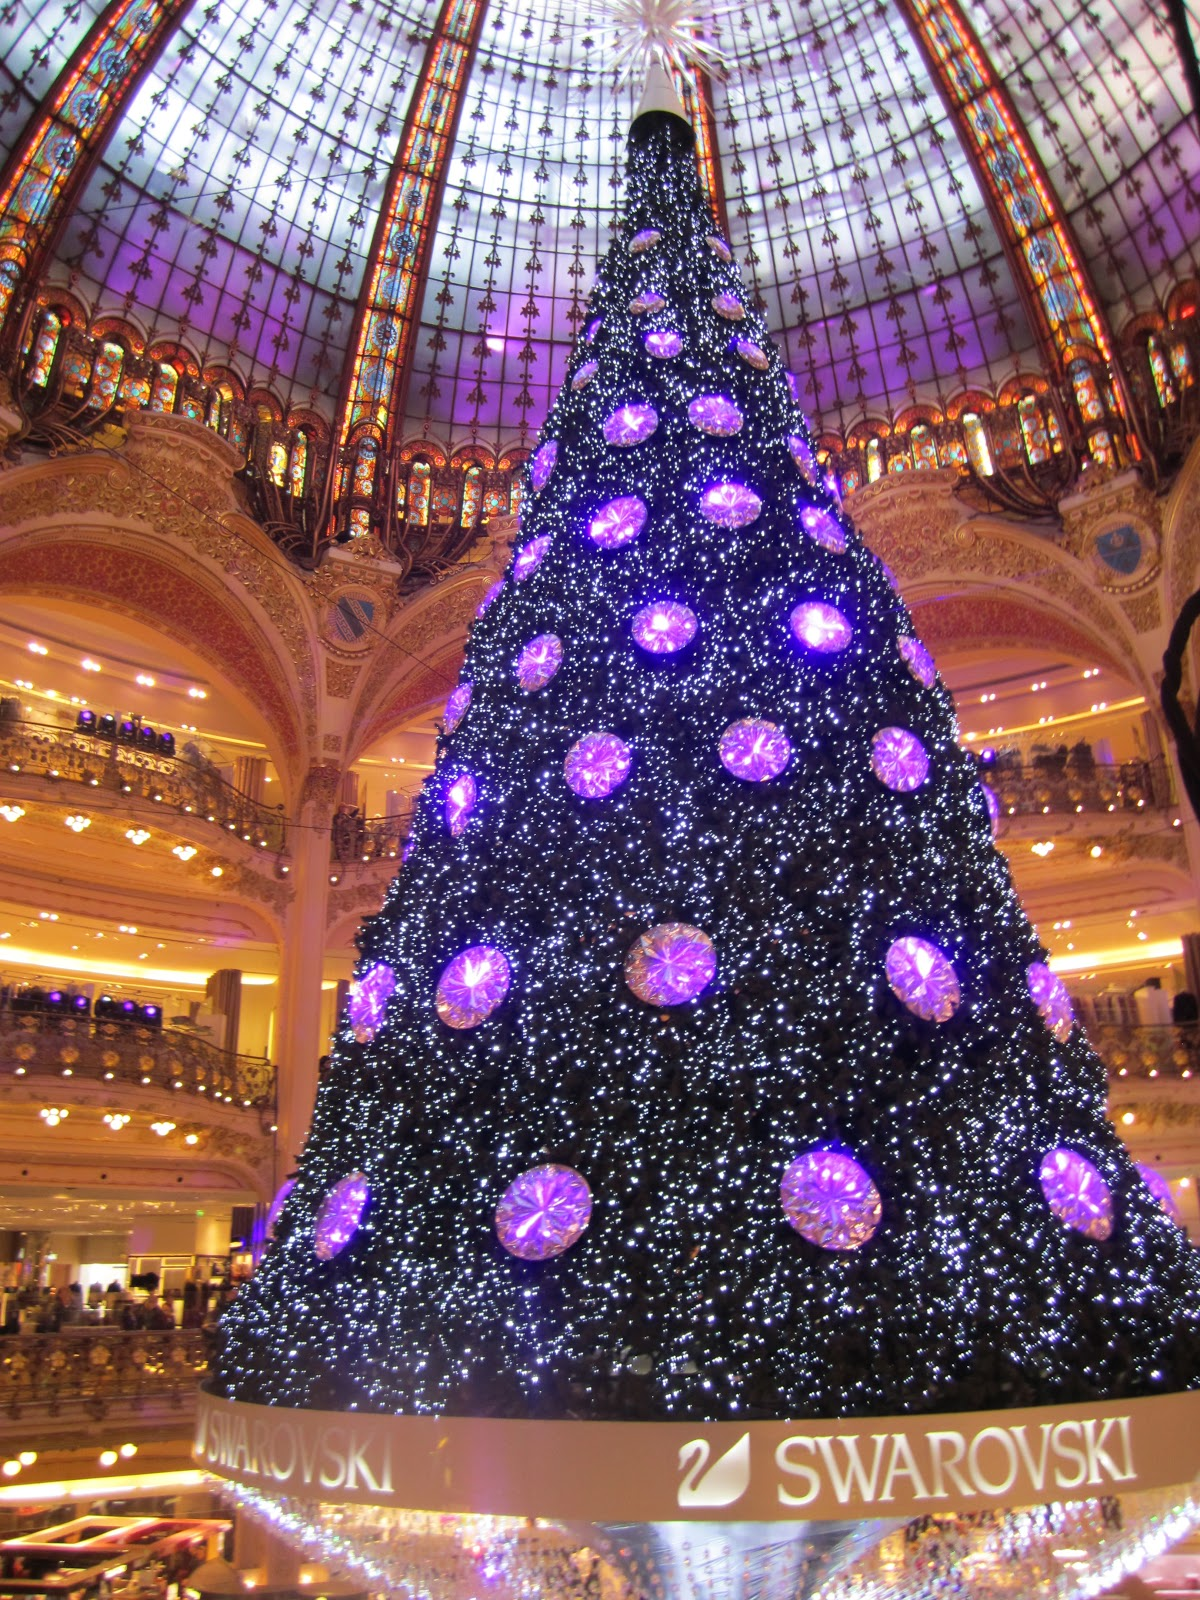 Dreaming amp; Tree Lafayette Galerie France Chocolate Of Christmas Croissants